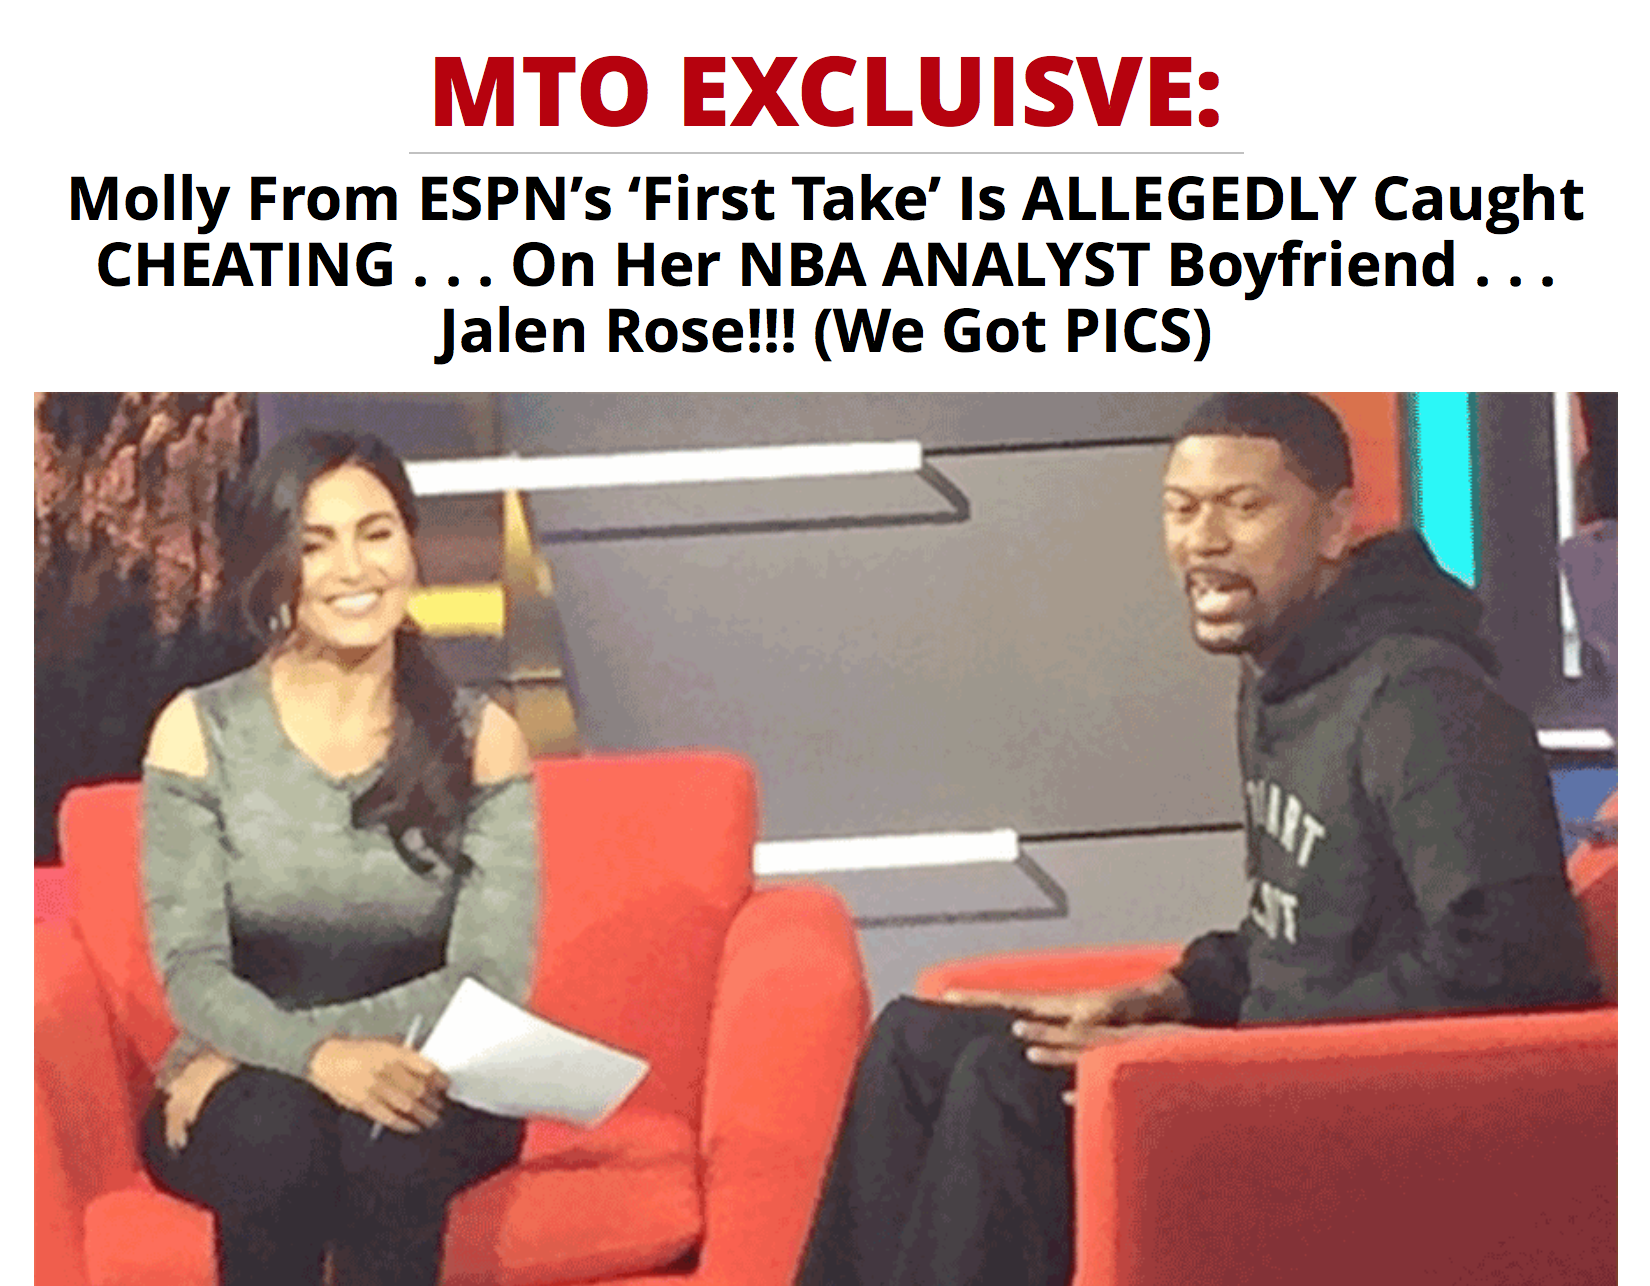 First Take Host Molly Qerim Cheating Story Is #FAKENEWS ... Here We Go  Again, MTO! - HipHollywood